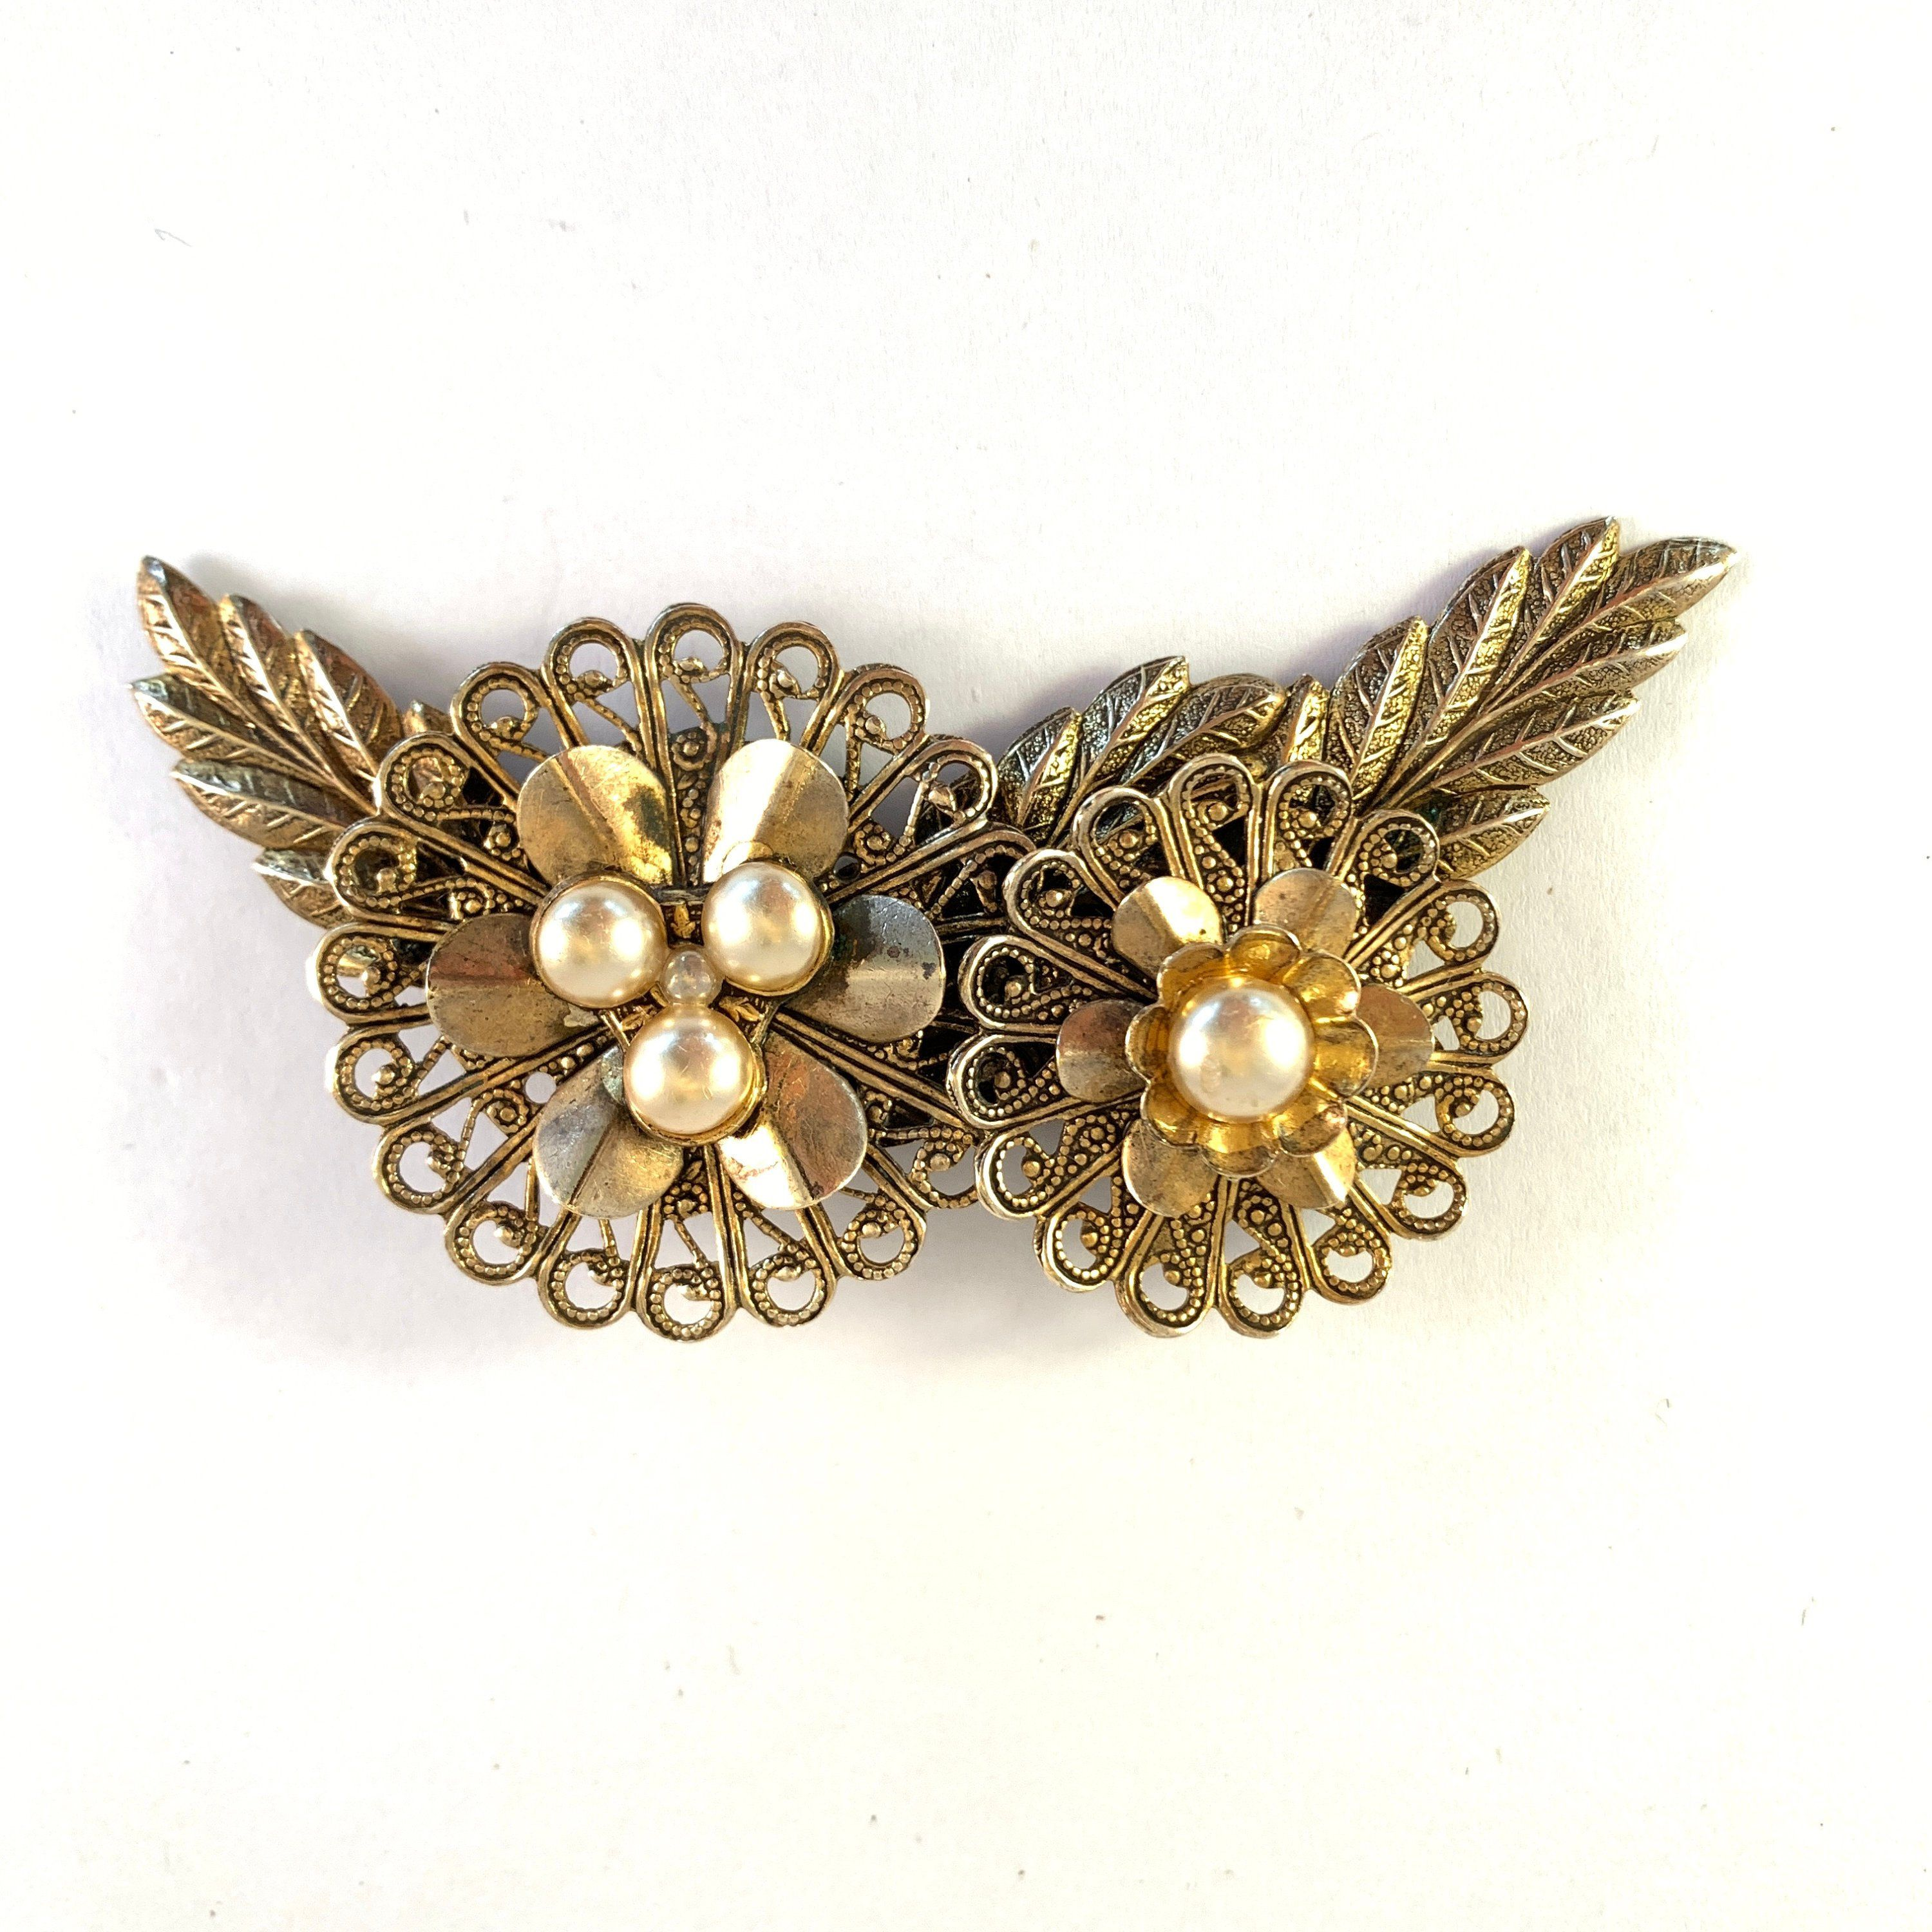 Vintage Amazing Filigree /& Faux Pearl Large Brooch Lovely